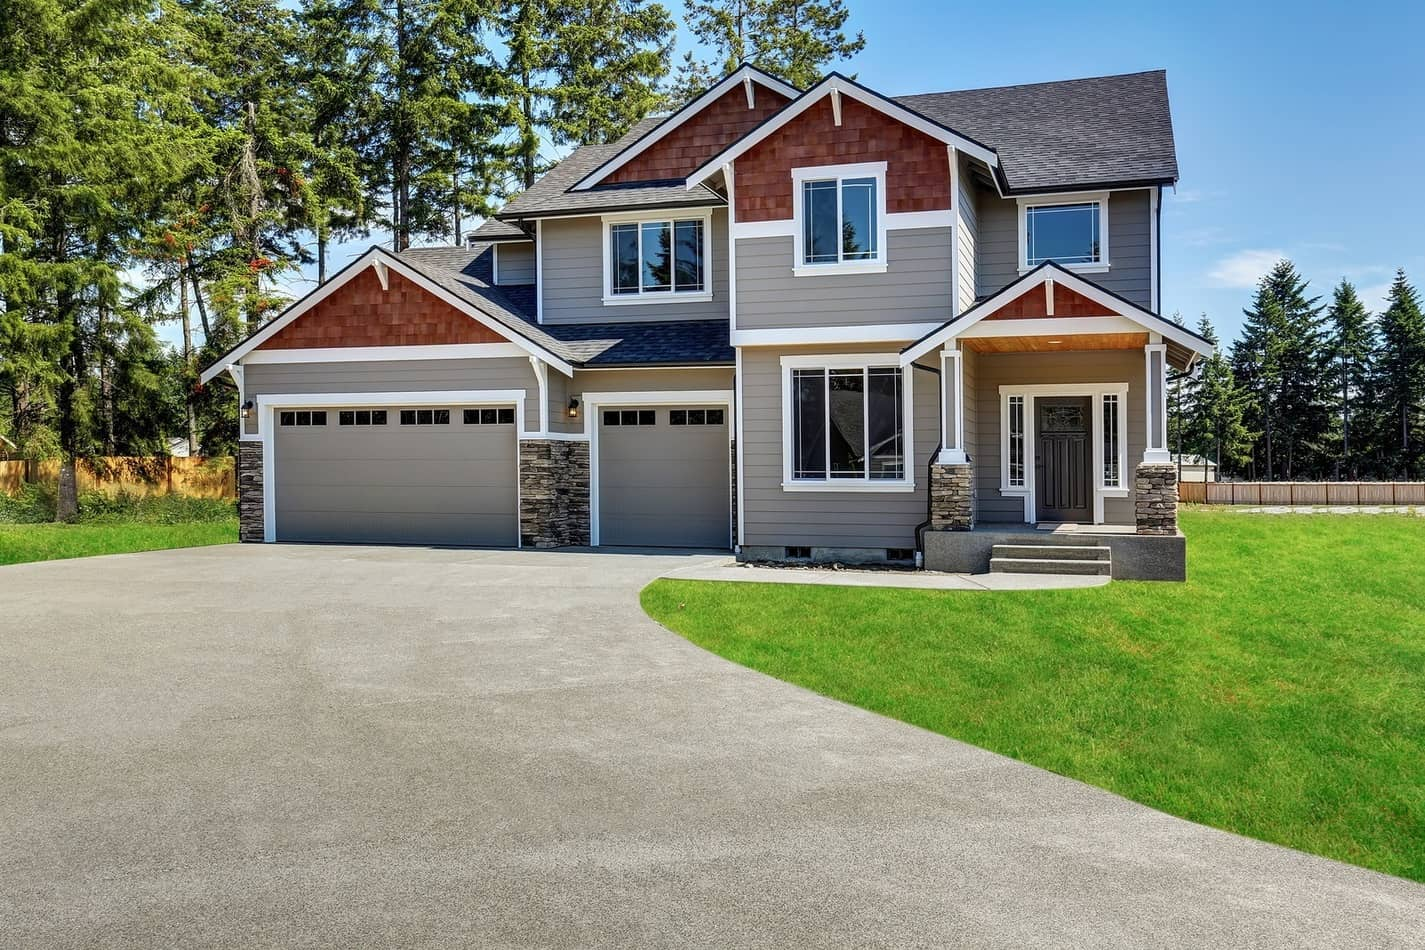 Craftsman American House With Rocks Trim, Garage And Concrete Fl